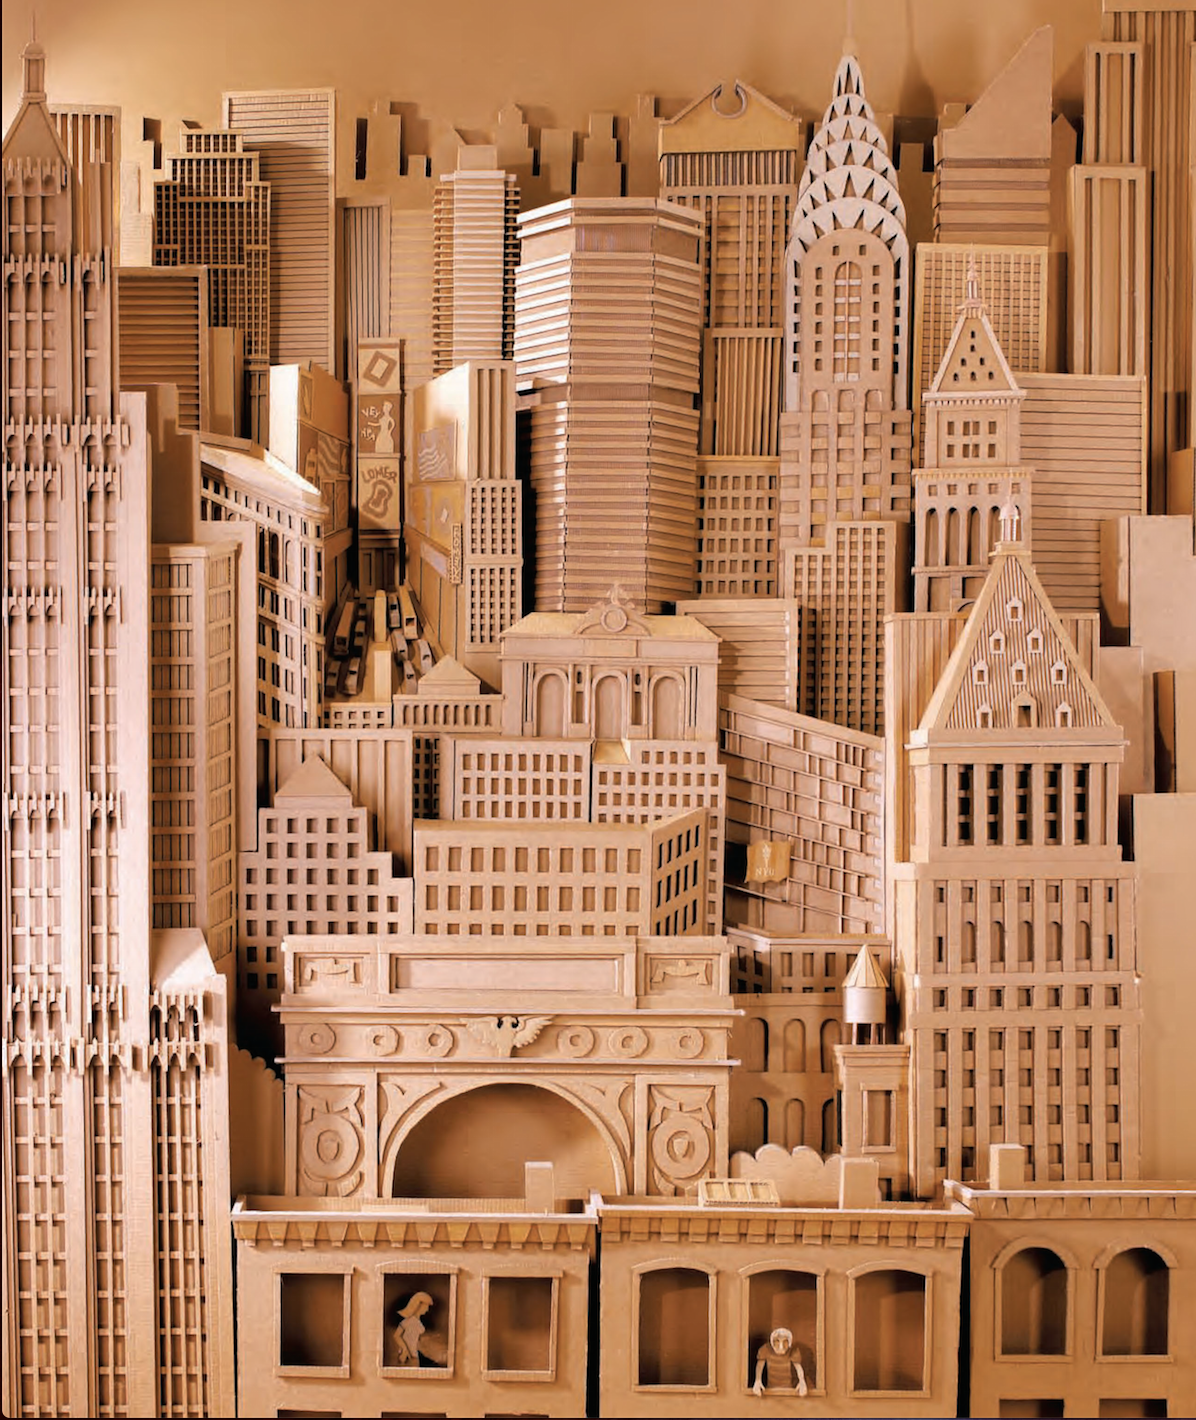 """Daniel Agdag's intricate creations take inspiration from his fascination with the complex, internal mechanisms which lie behind the sleek facades of modern technology. His works have been described as """"architectural imaginings"""" because they strike the perfect balance between conceivable machinery and dreamy inventions."""